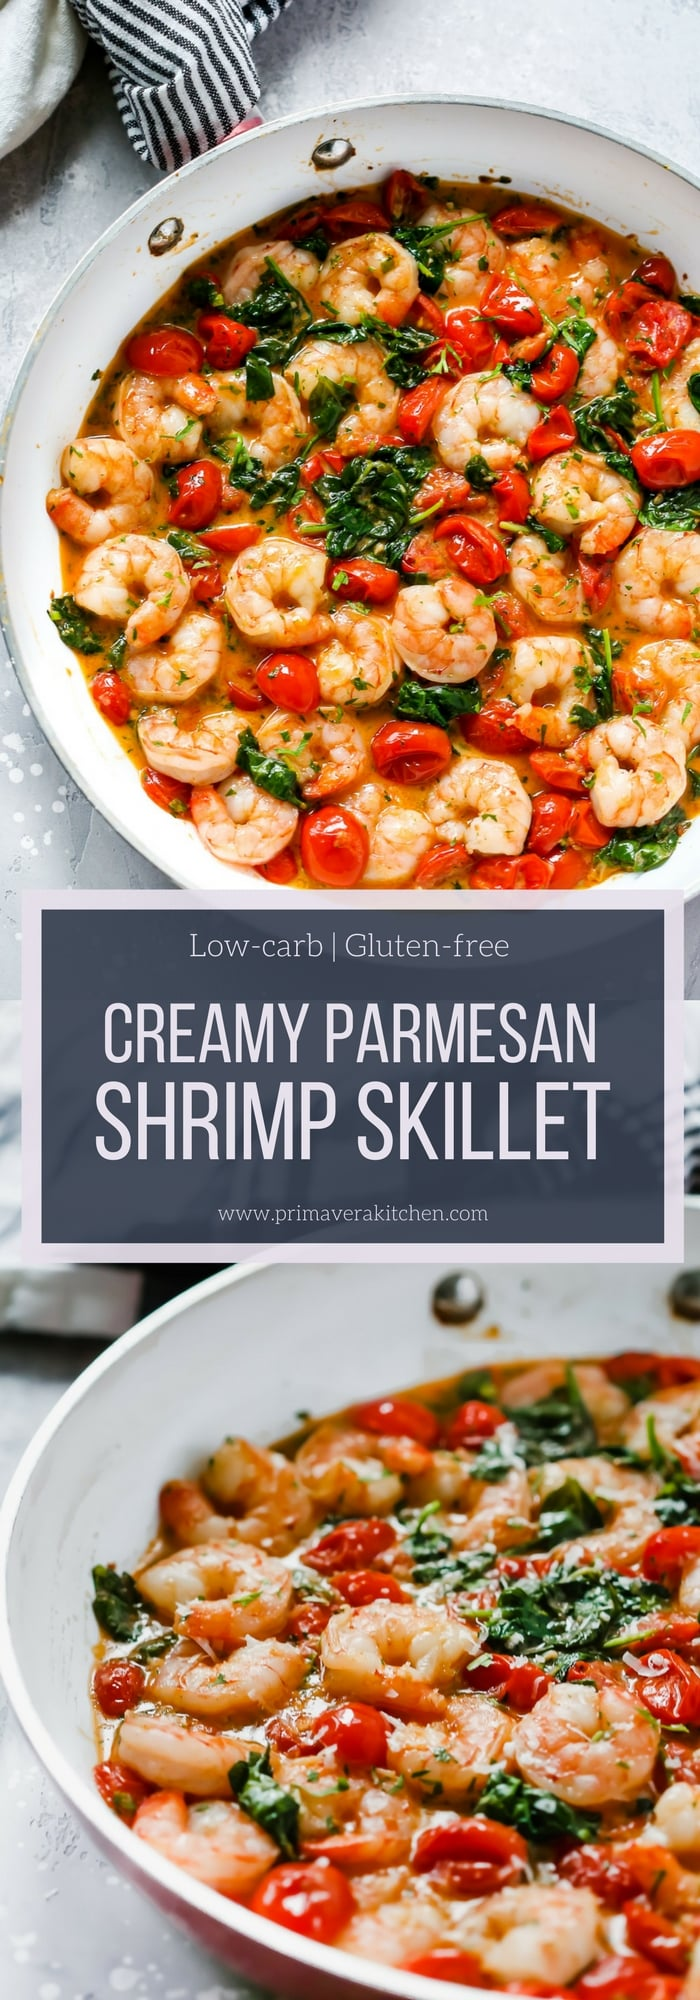 Creamy Parmesan Shrimp Skillet Primavera Kitchen Recipe